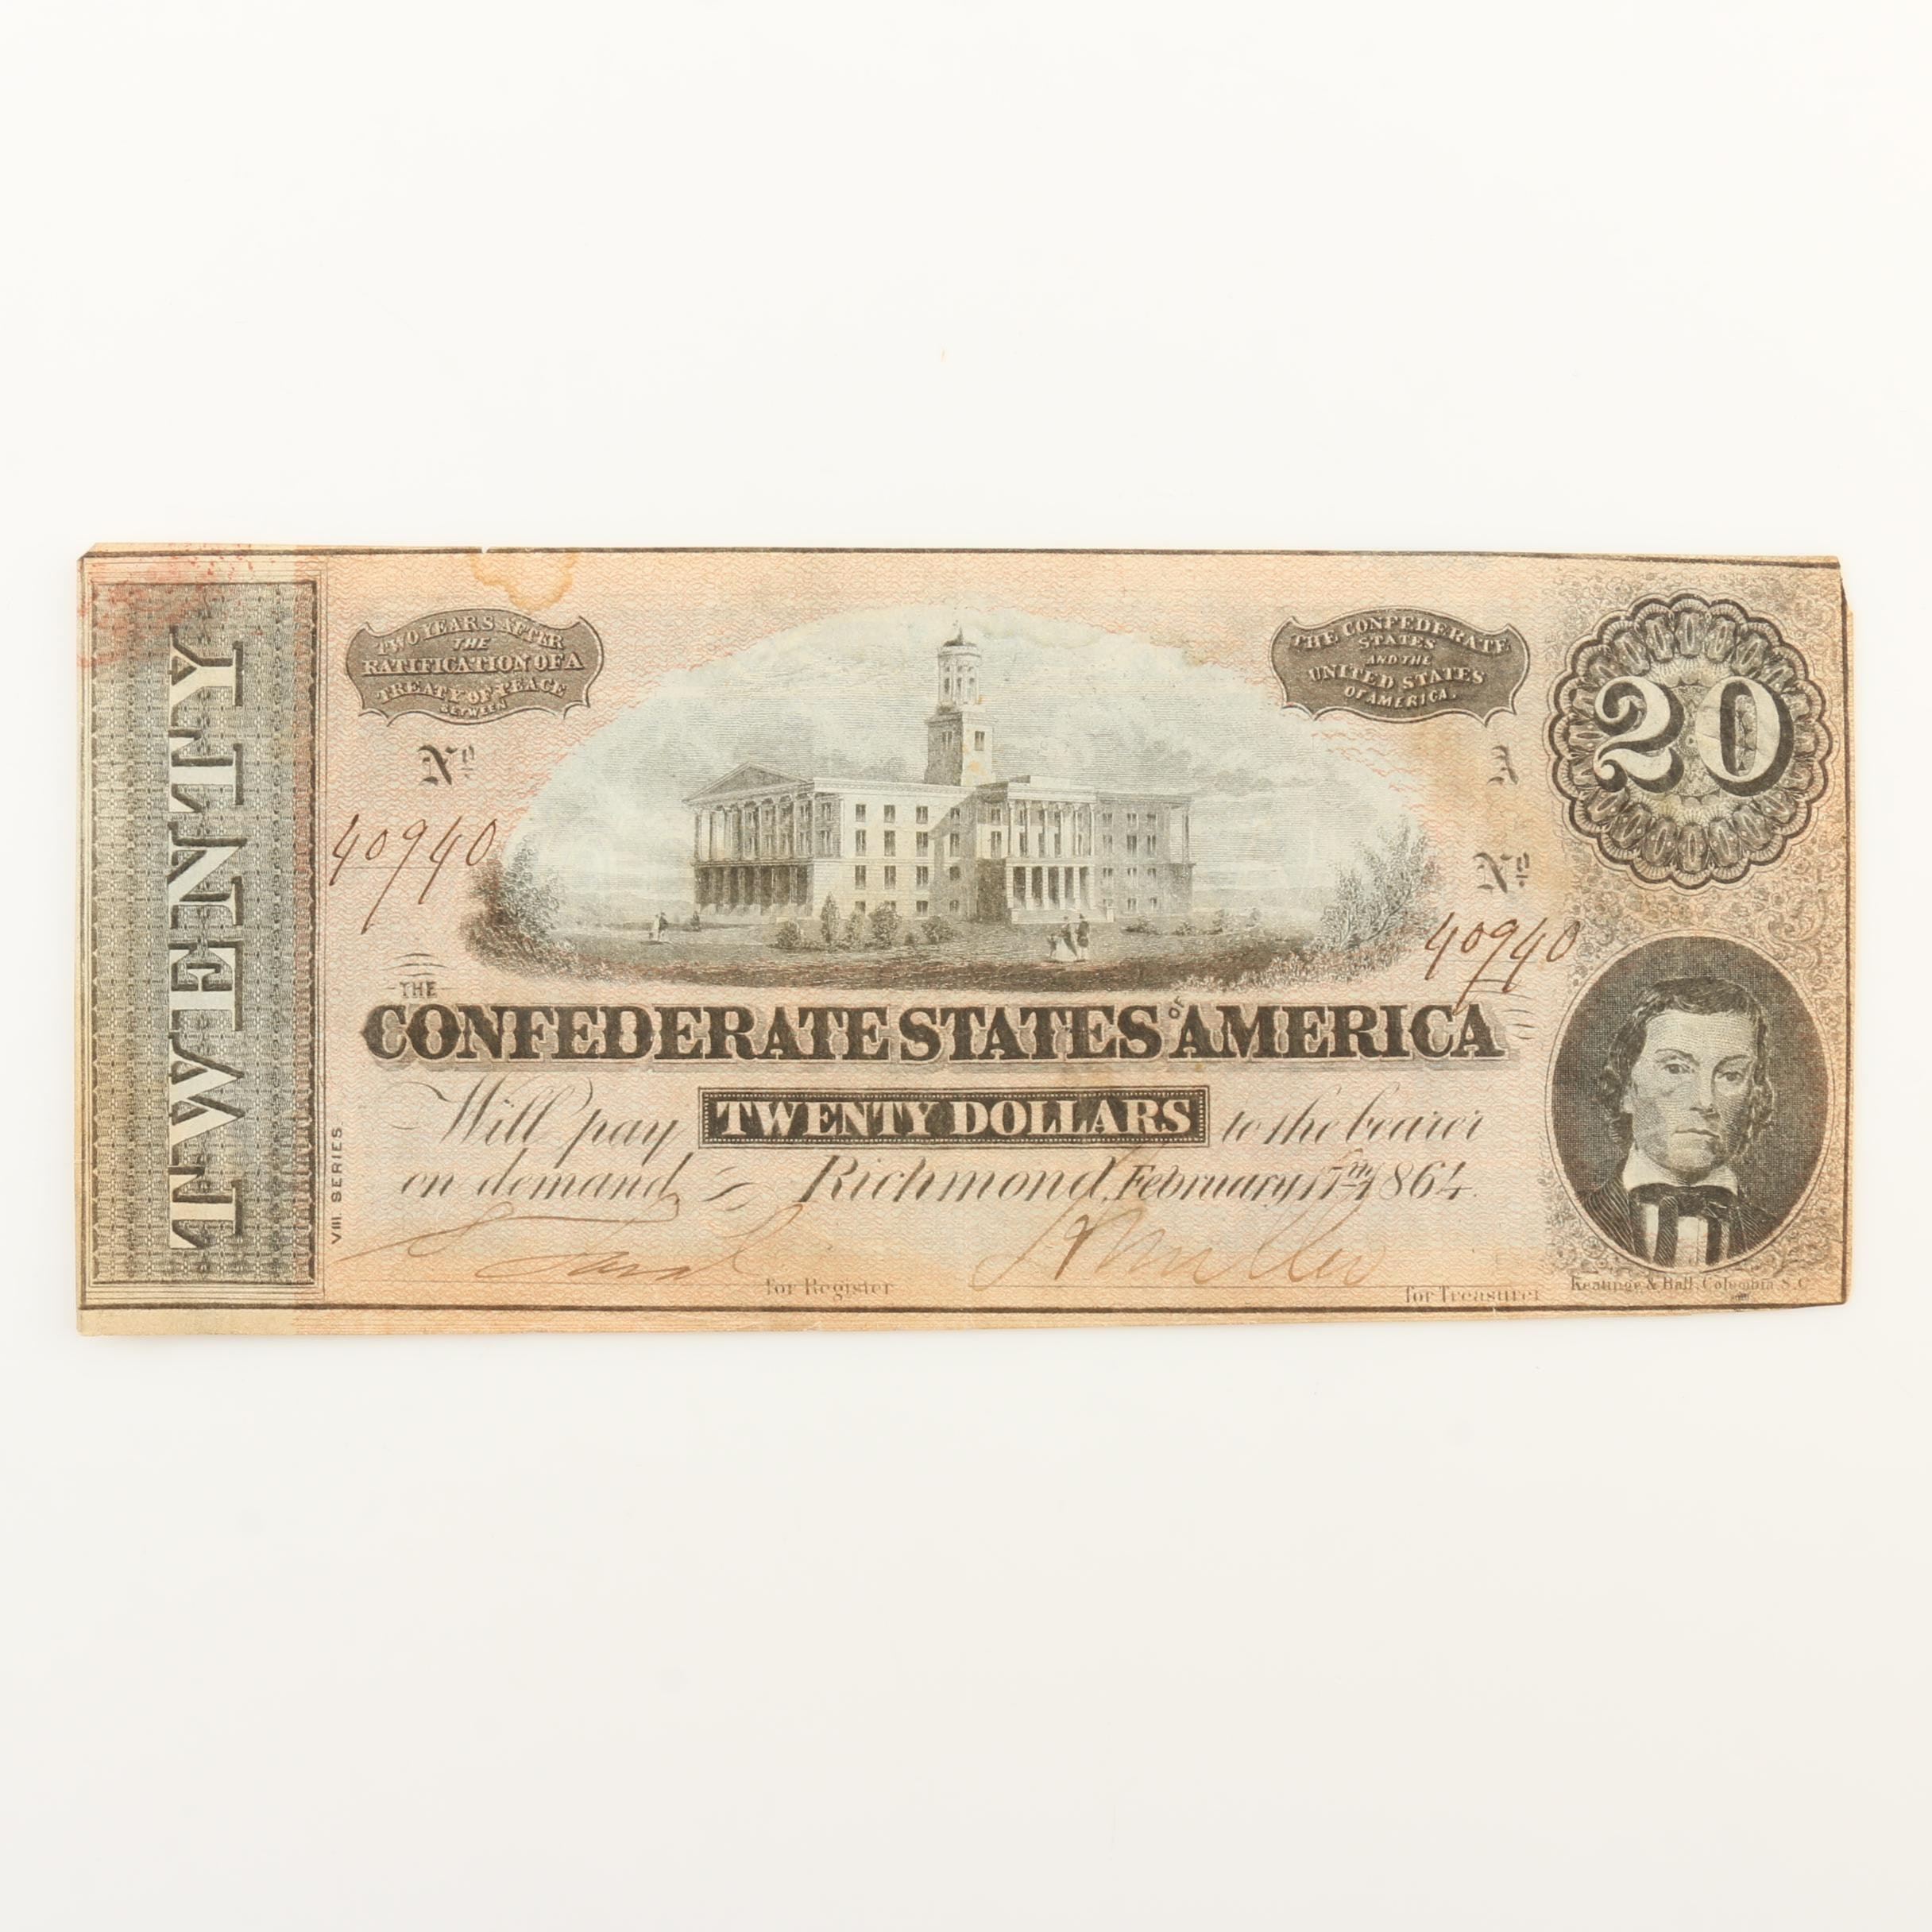 $20 Confederate States of America Banknote from 1864